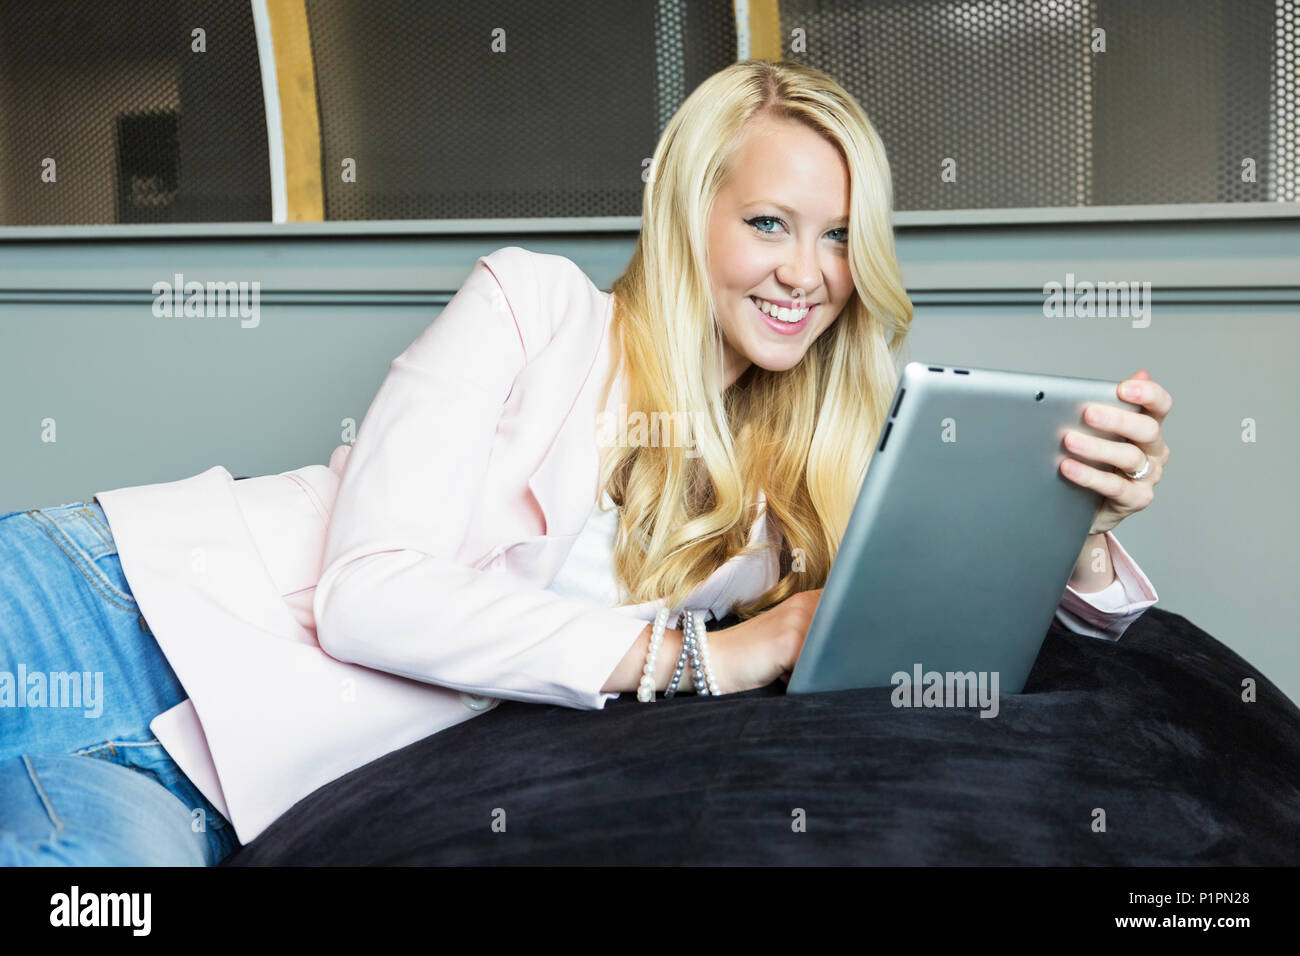 Business portrait of a beautiful young millennial businesswoman with long blond hair holding a tablet and posing for the camera in the workplace - Stock Image